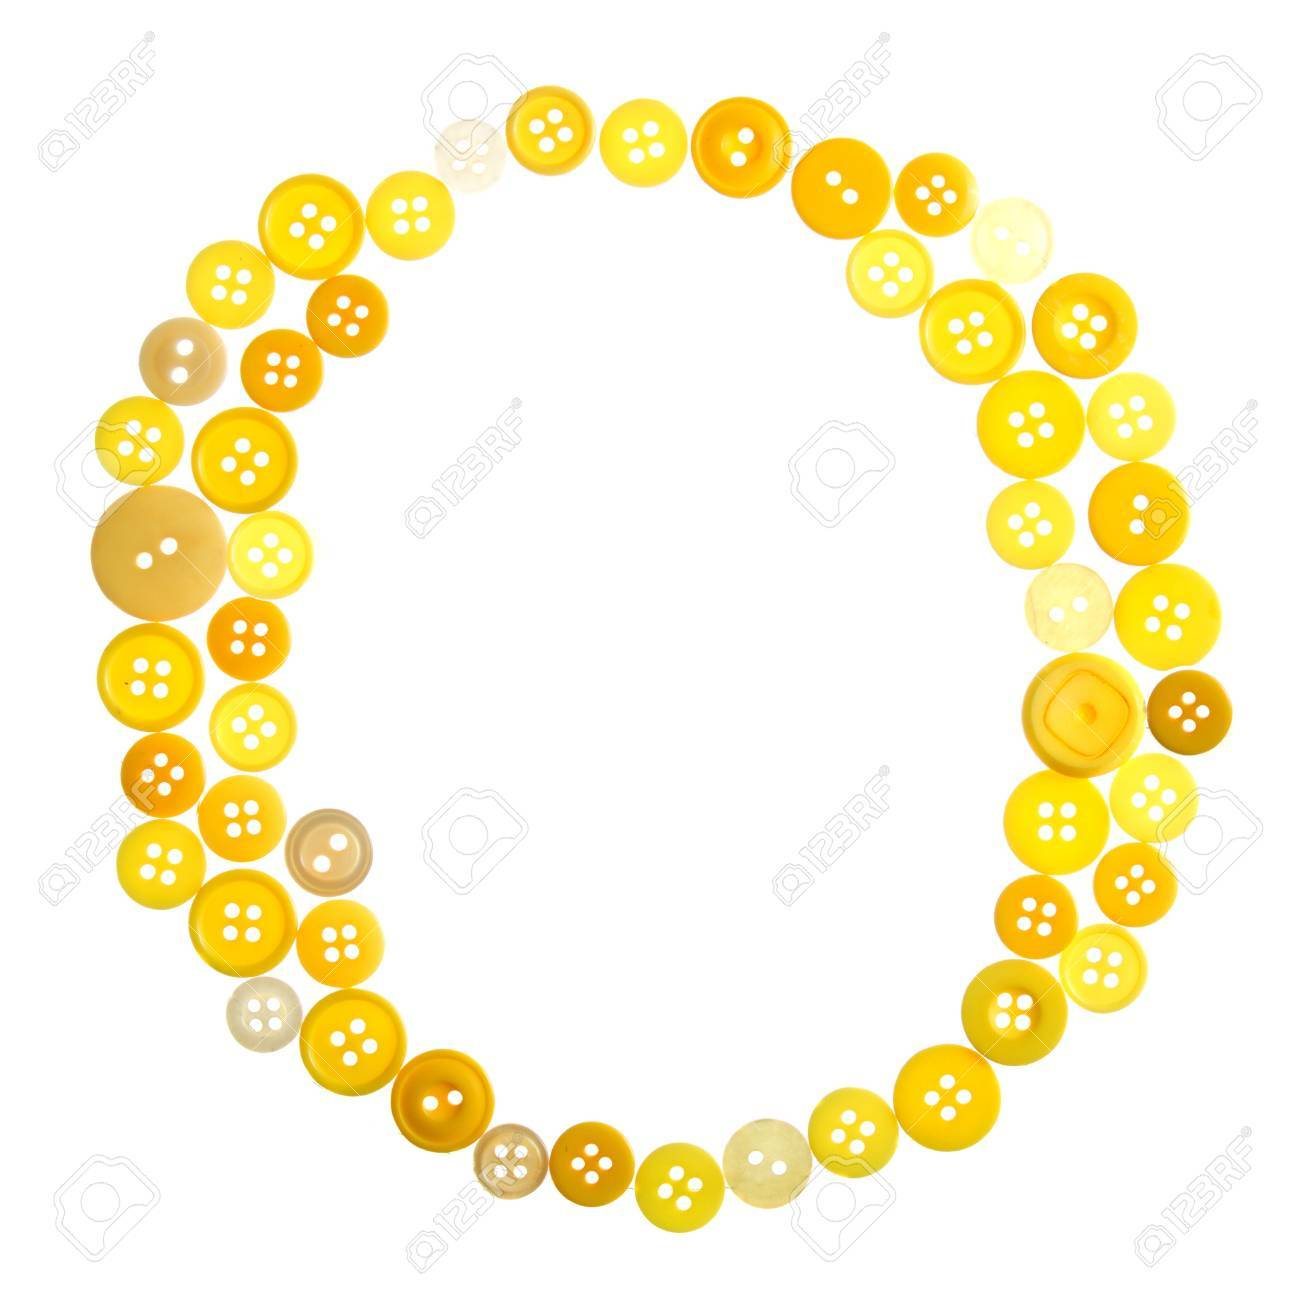 The letter O made of photographed buttons, isolated on a white background Stock Photo - 12503814